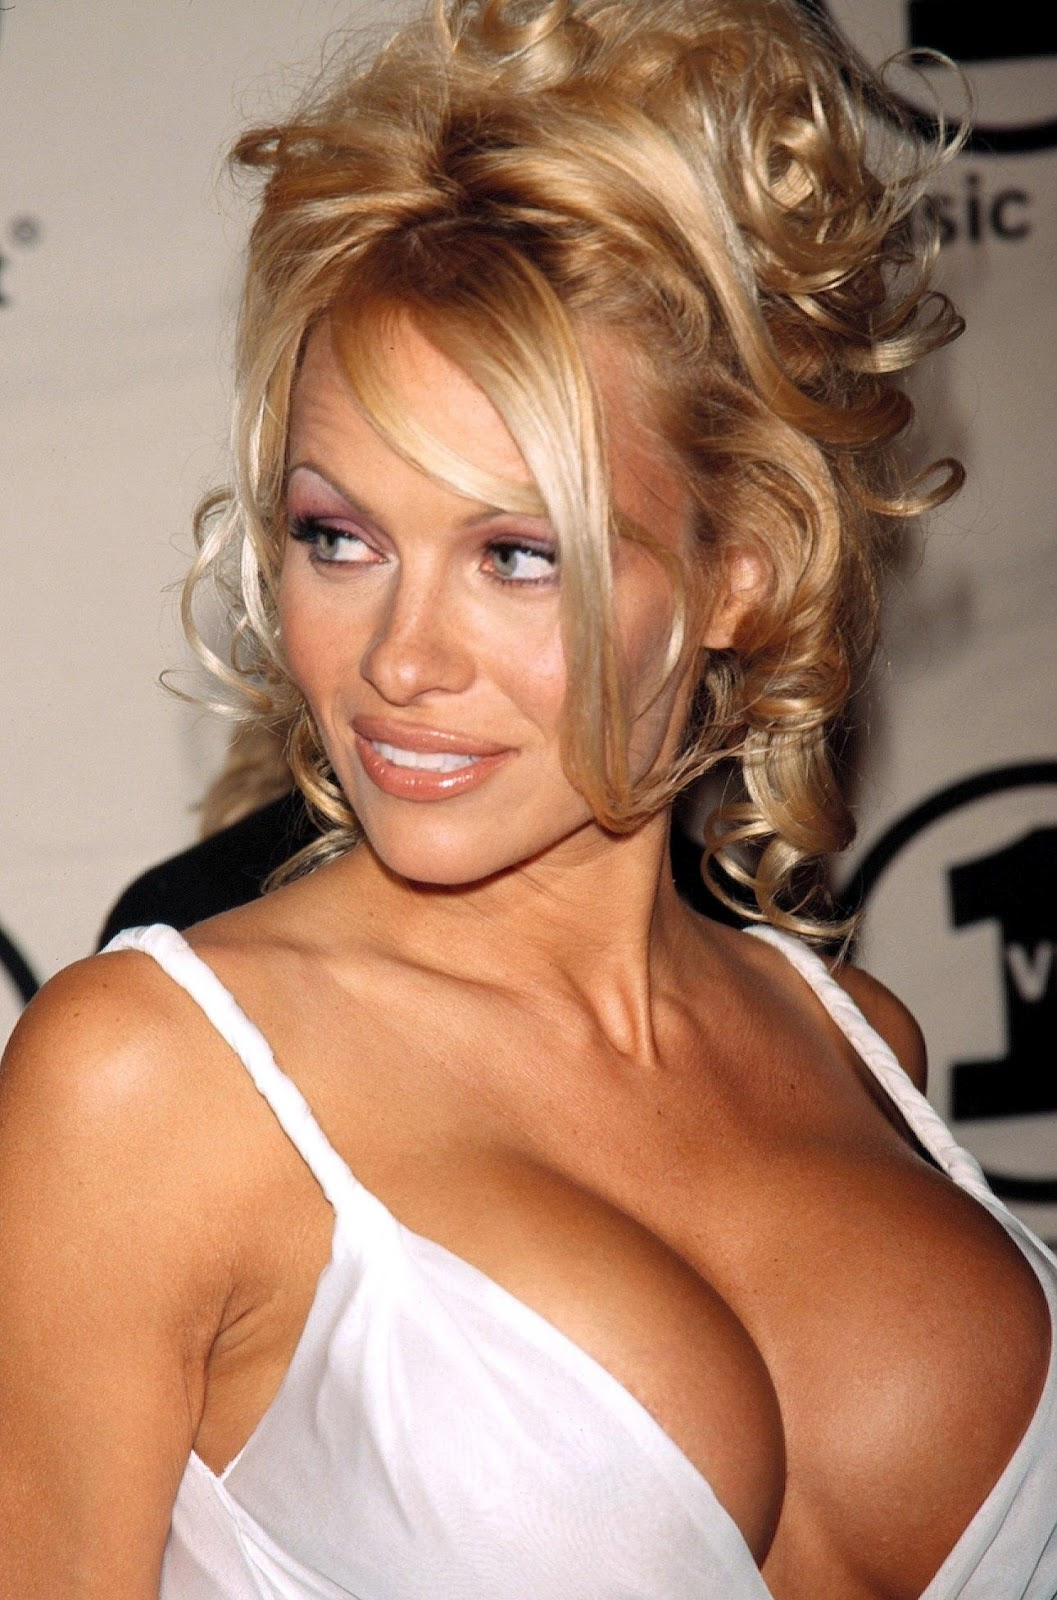 Unseen Girl Wallpaper Hollywood All Stars Pamela Anderson Hot Pictures In 2012